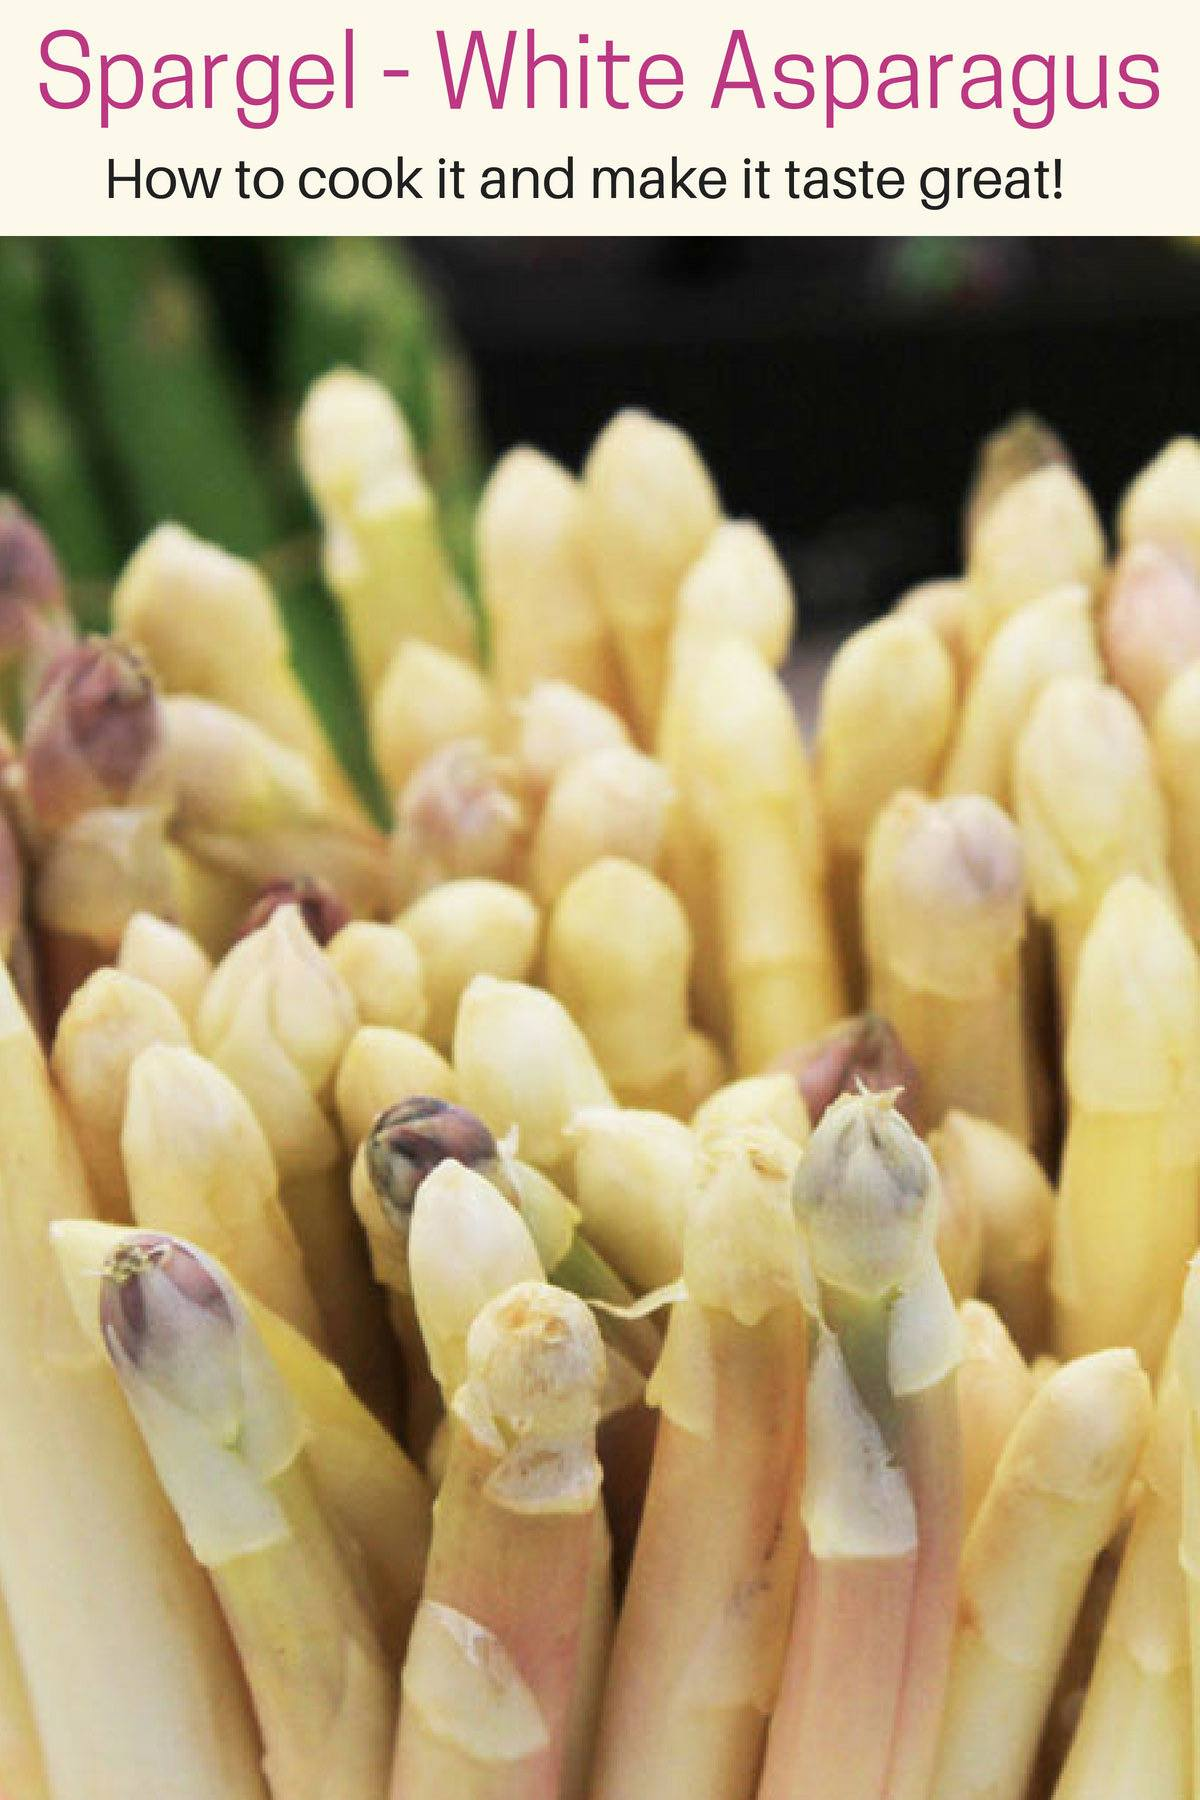 A German vegetable to beat all others! Spargel or white asparagus...yum!